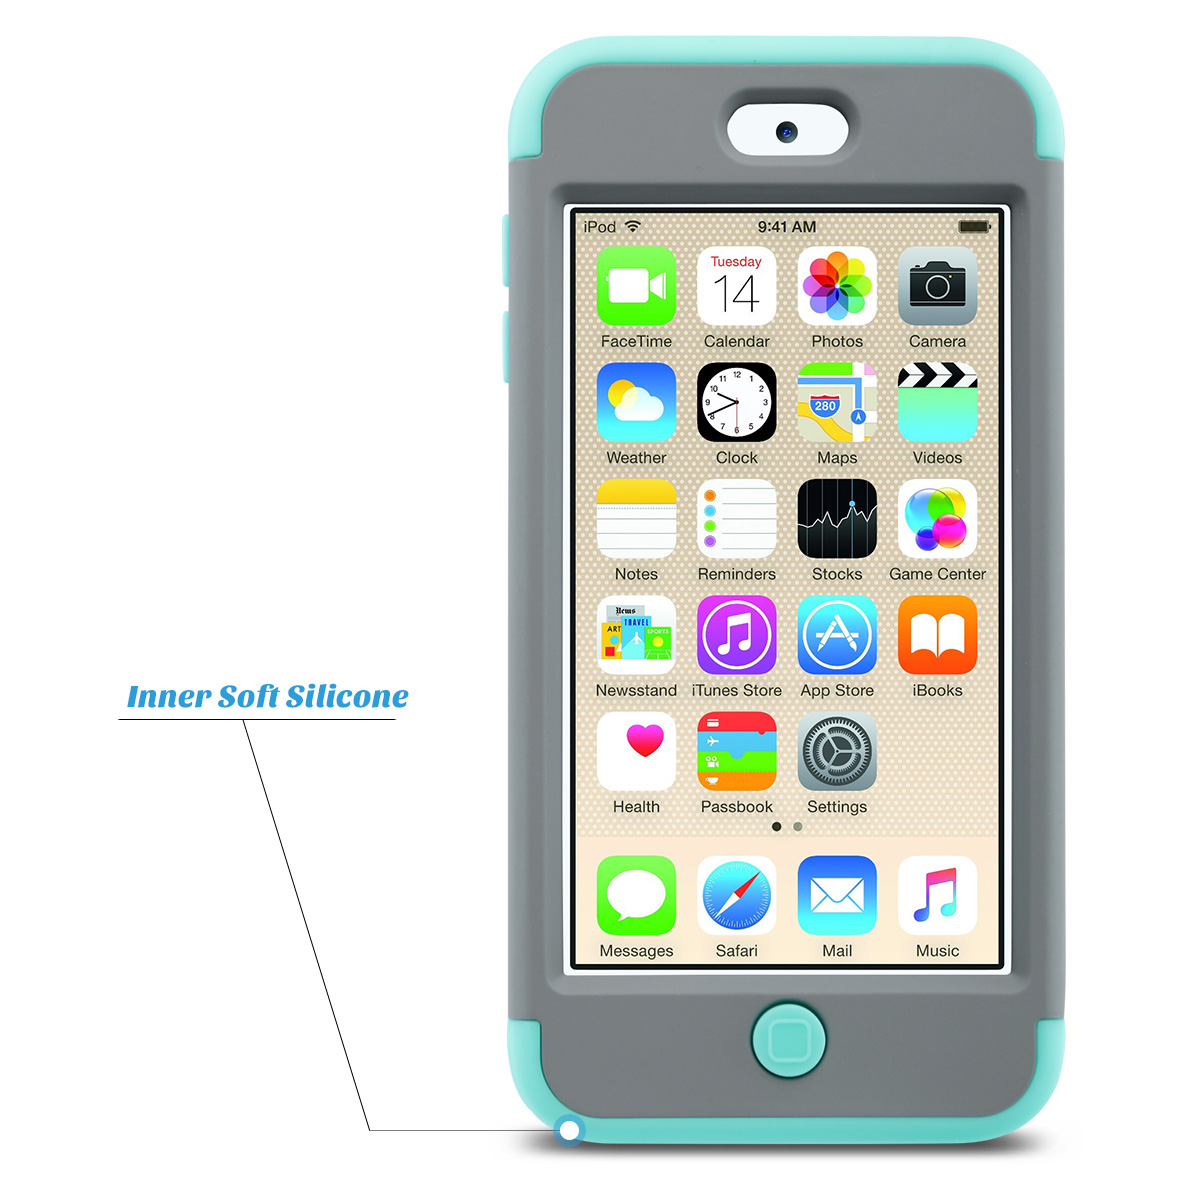 ipod touch 6th generation deals on 1001 blocks. Black Bedroom Furniture Sets. Home Design Ideas